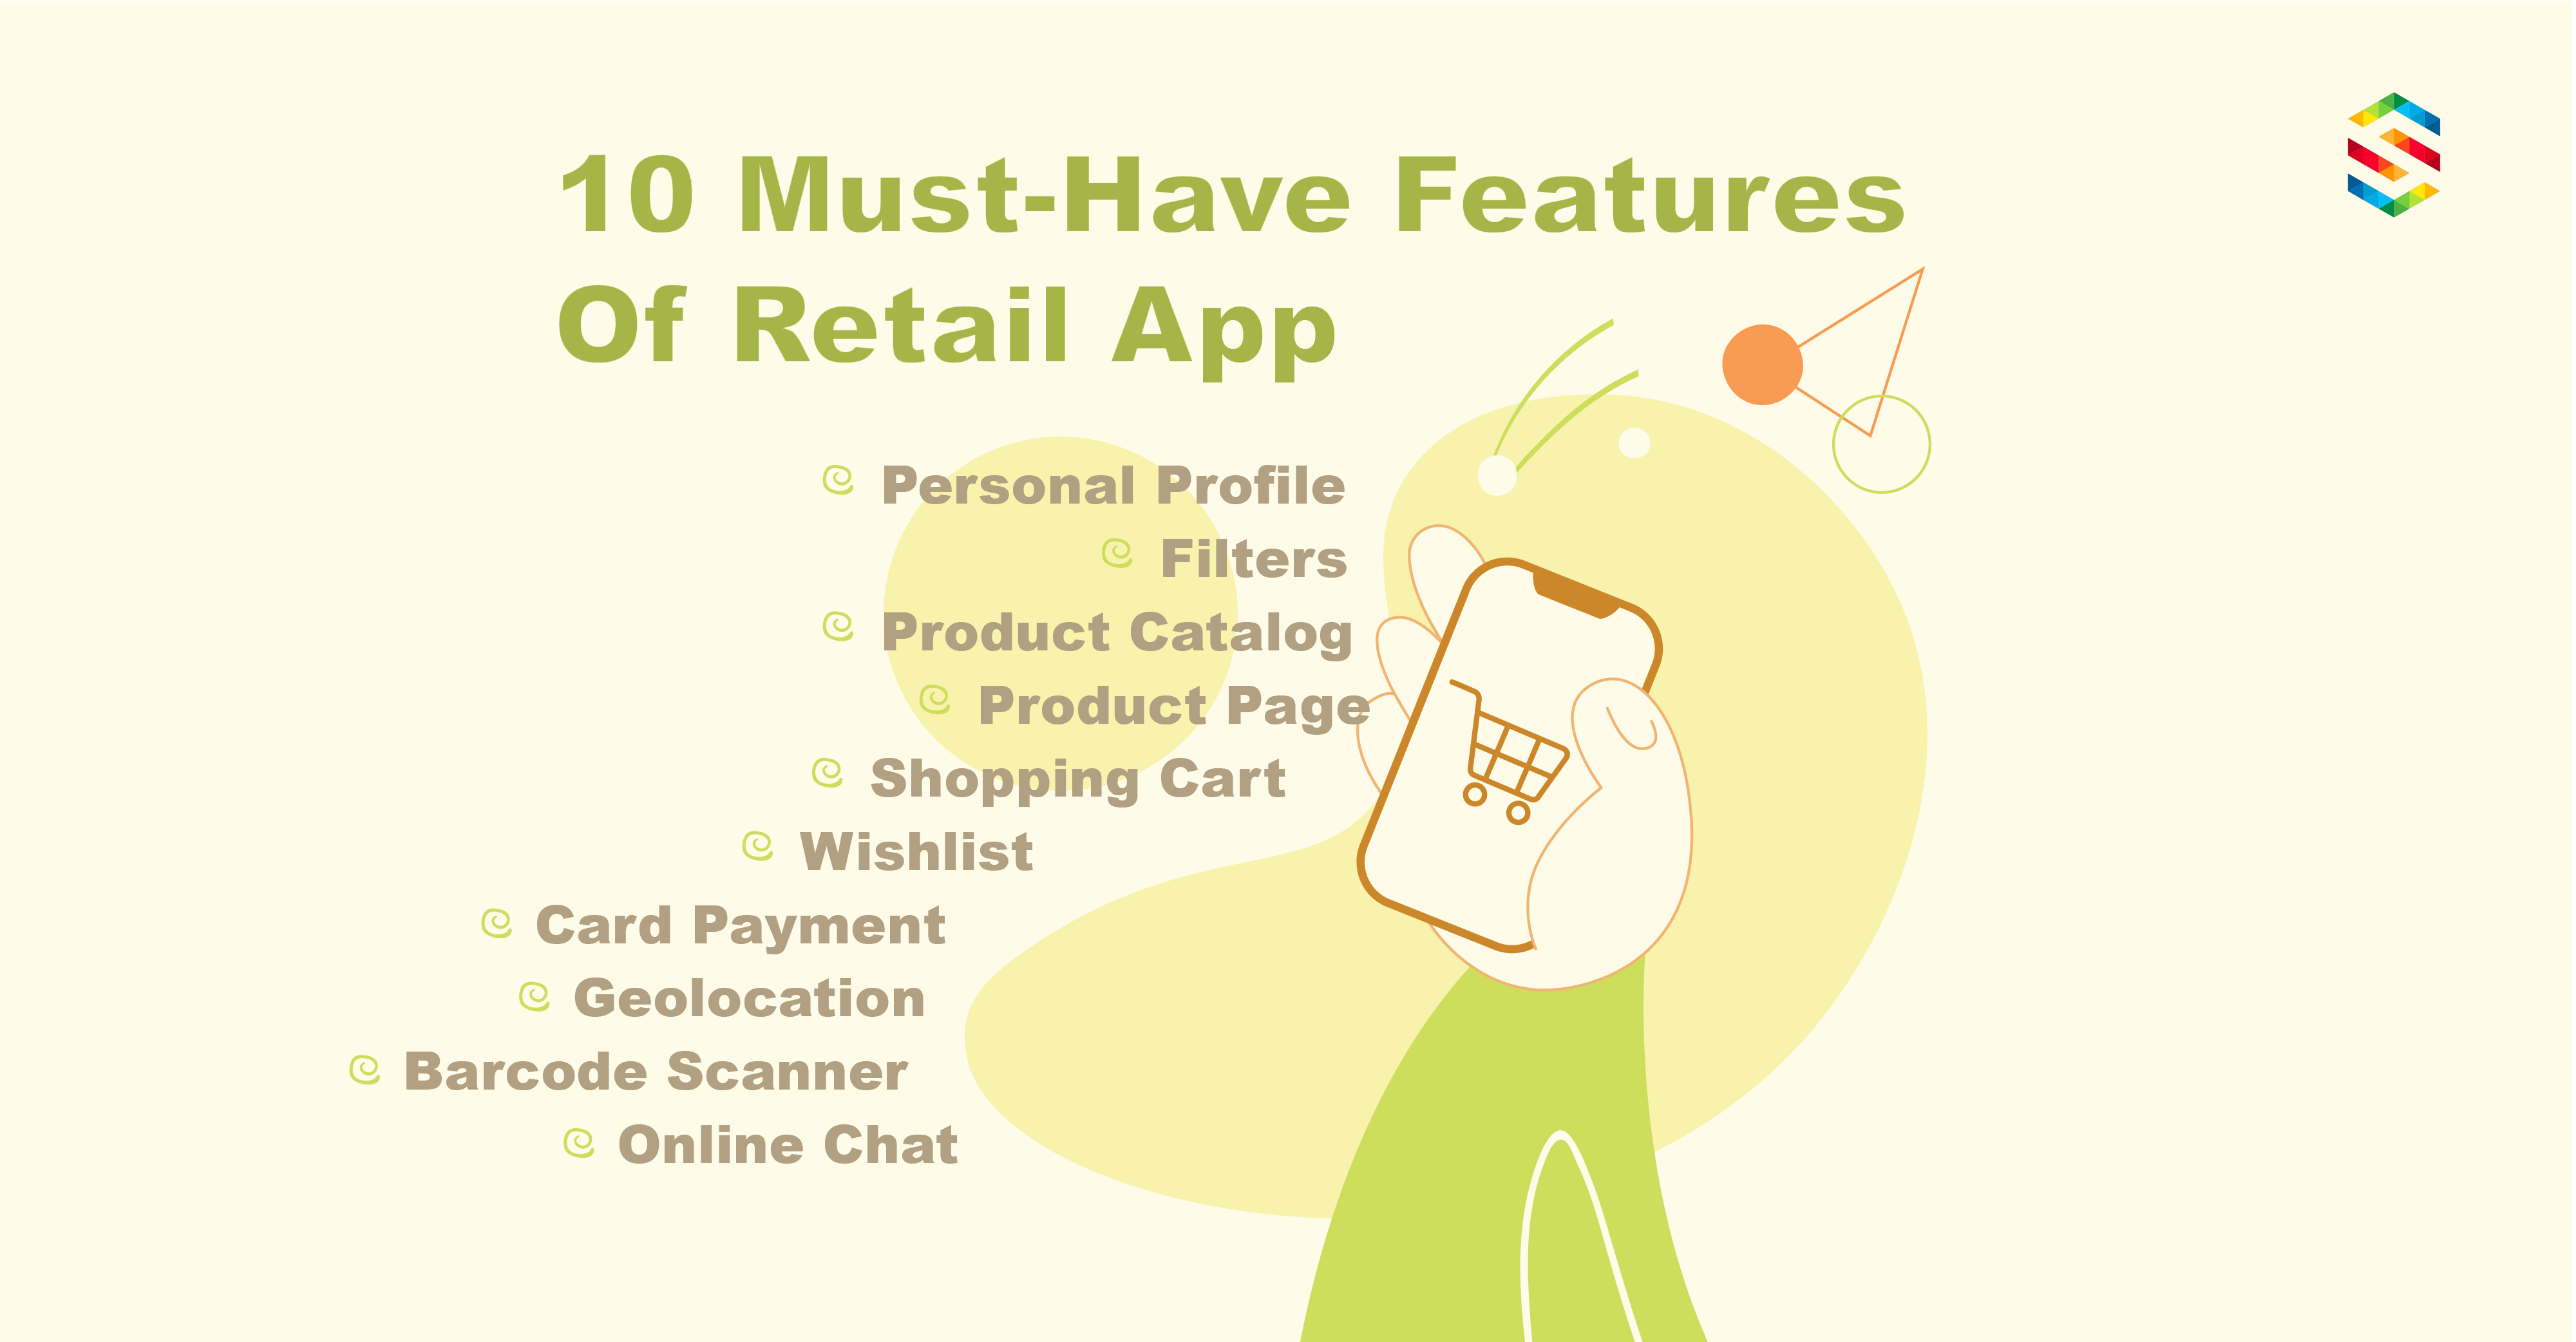 Retail app features